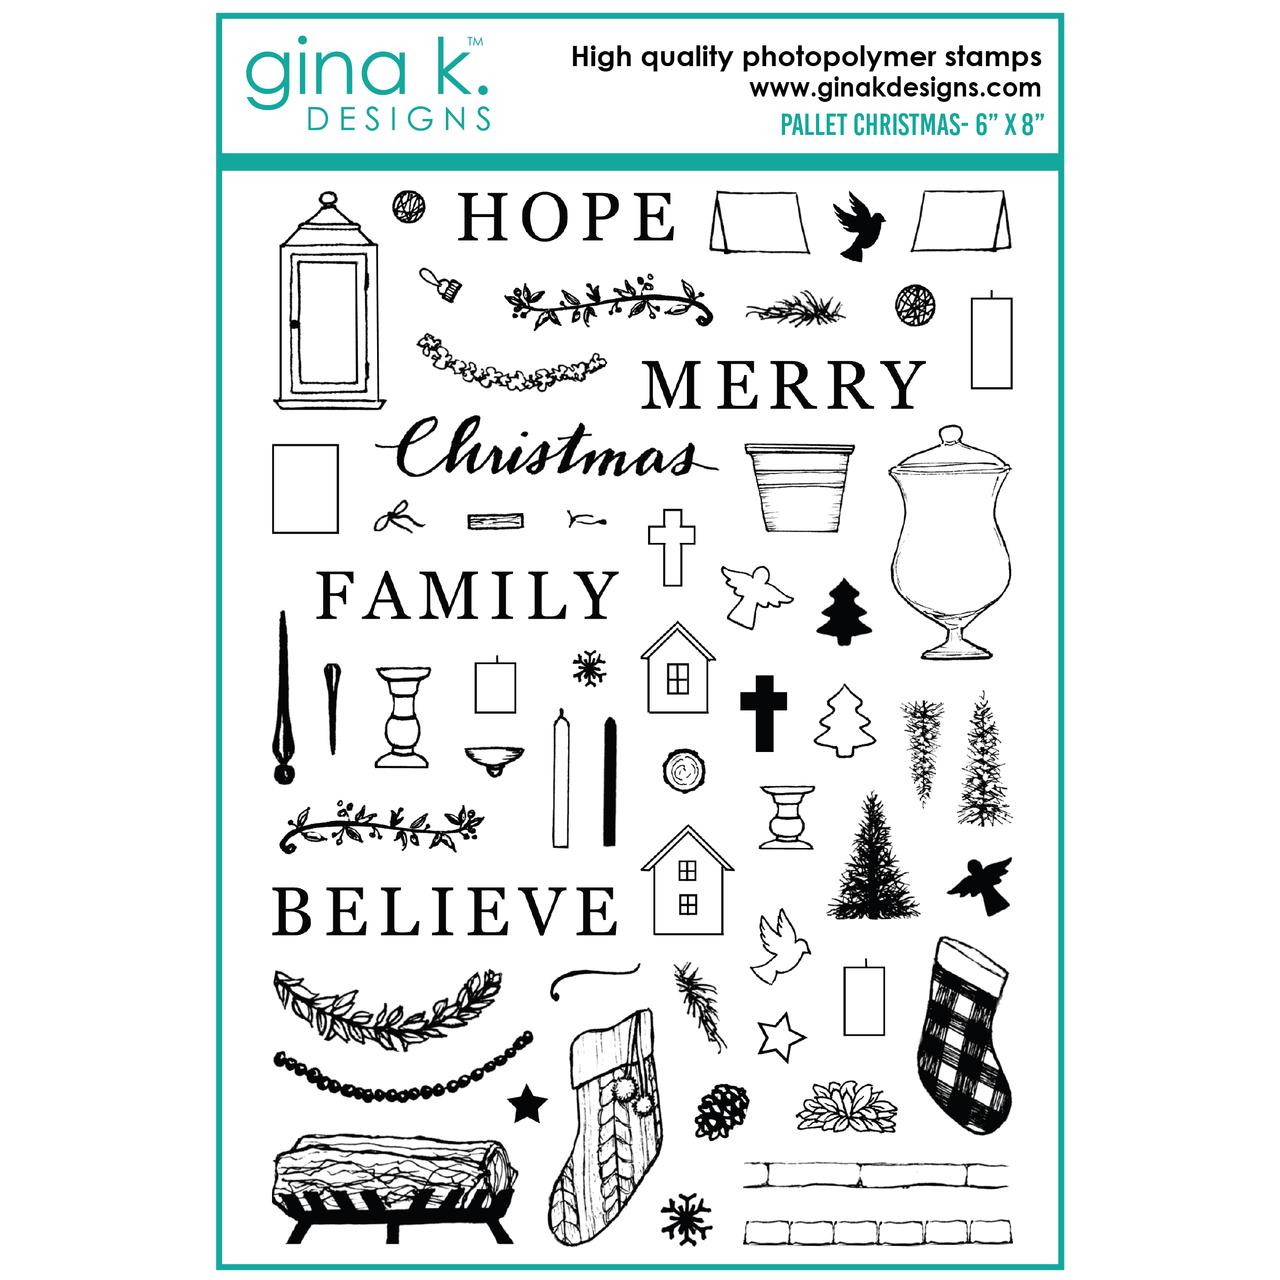 Pallet Christmas, Gina K Designs Clear Stamps - 609015540480